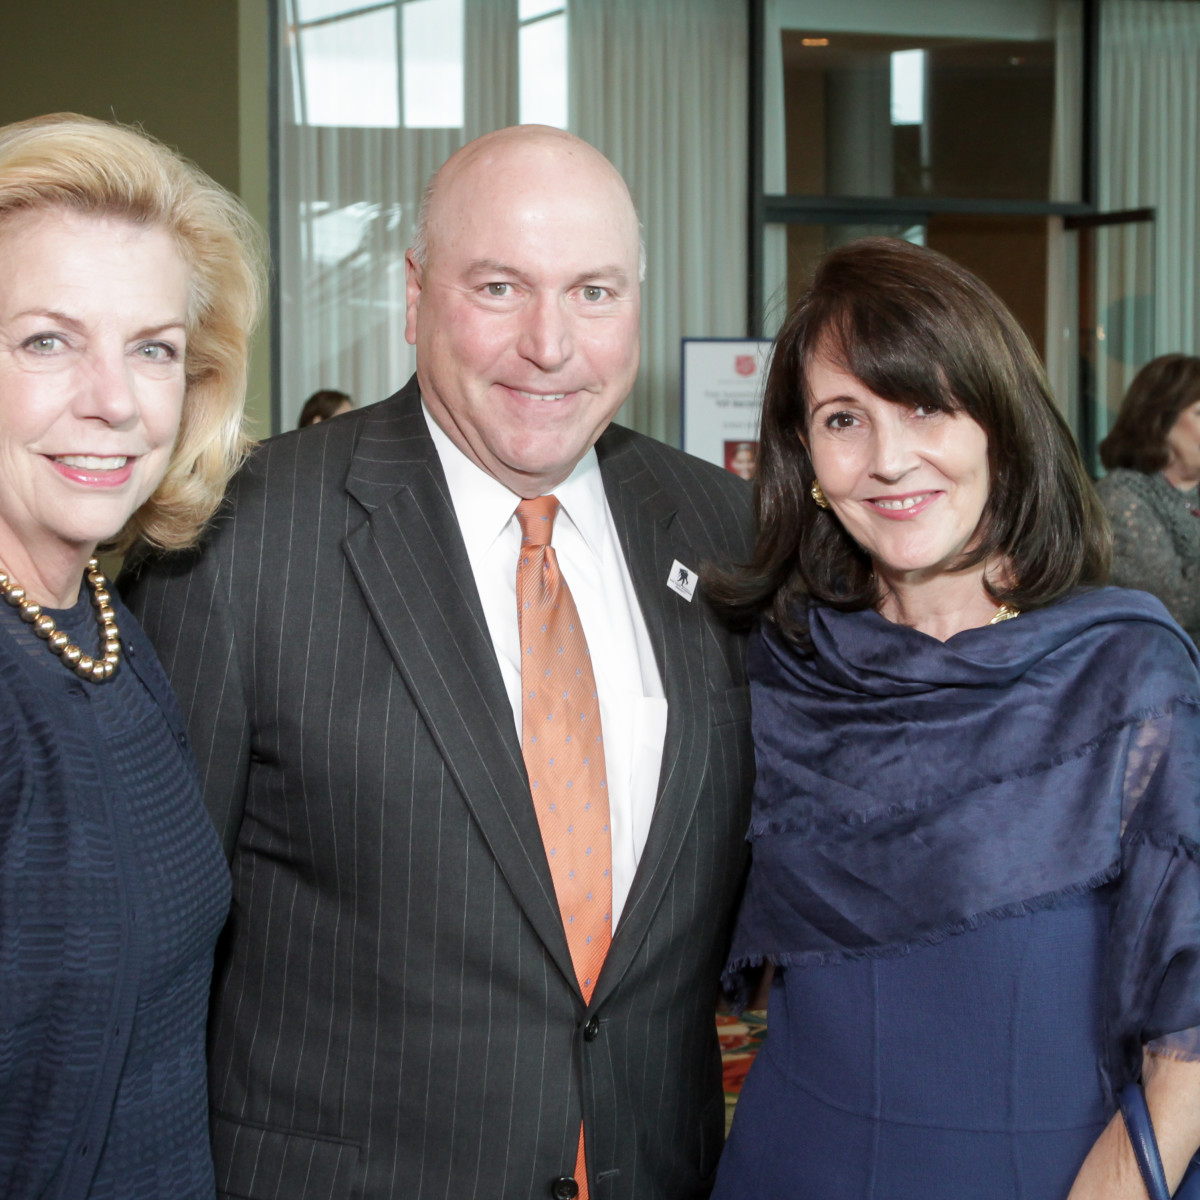 News, Shelby, Salvation Army luncheon, Nov. 2015, Elyse Joseph, James Madget, Jenny Elkins